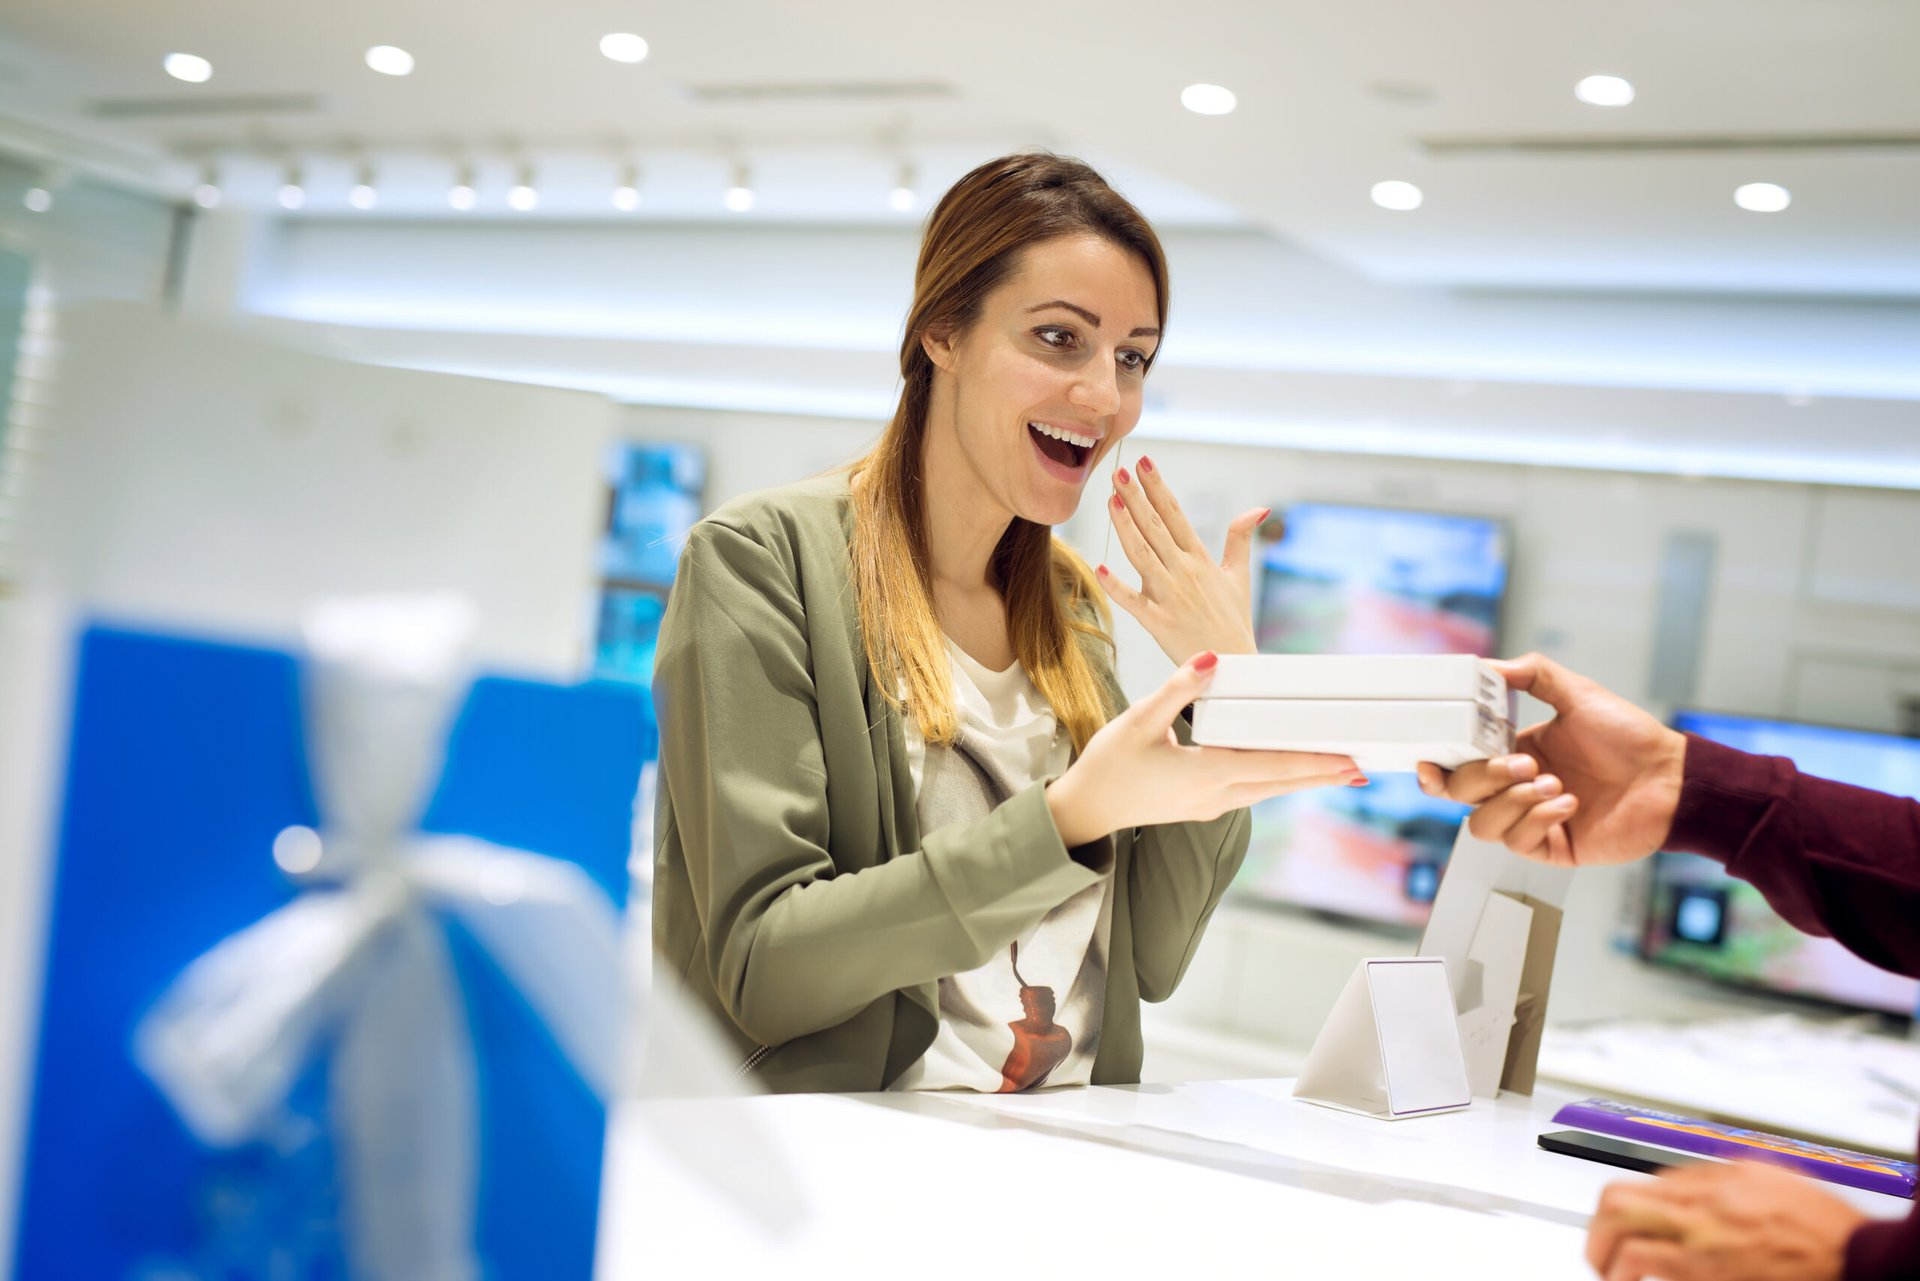 Woman excited about her new cellphone